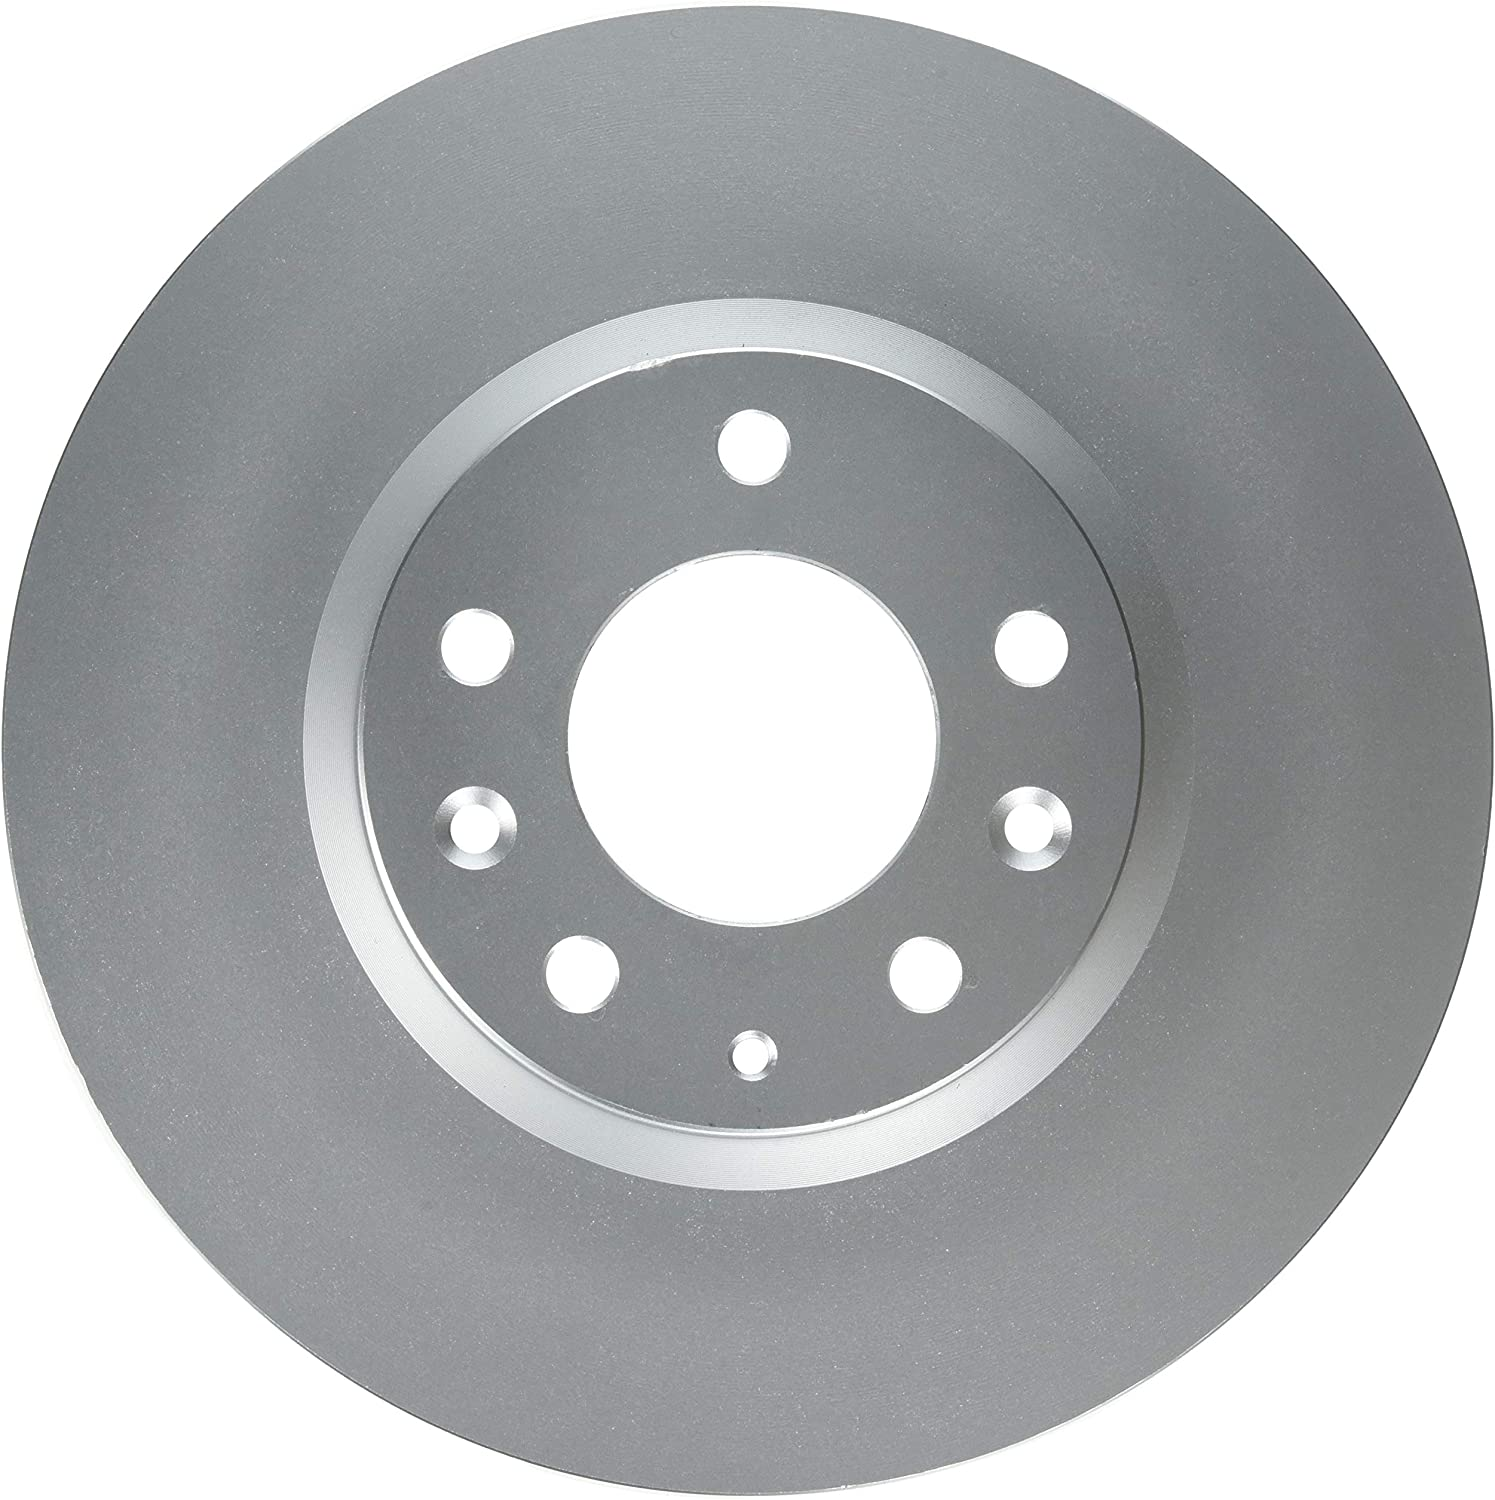 1 Pack Raybestos 680404FZN Rust Prevention Technology Coated Rotor Brake Rotor